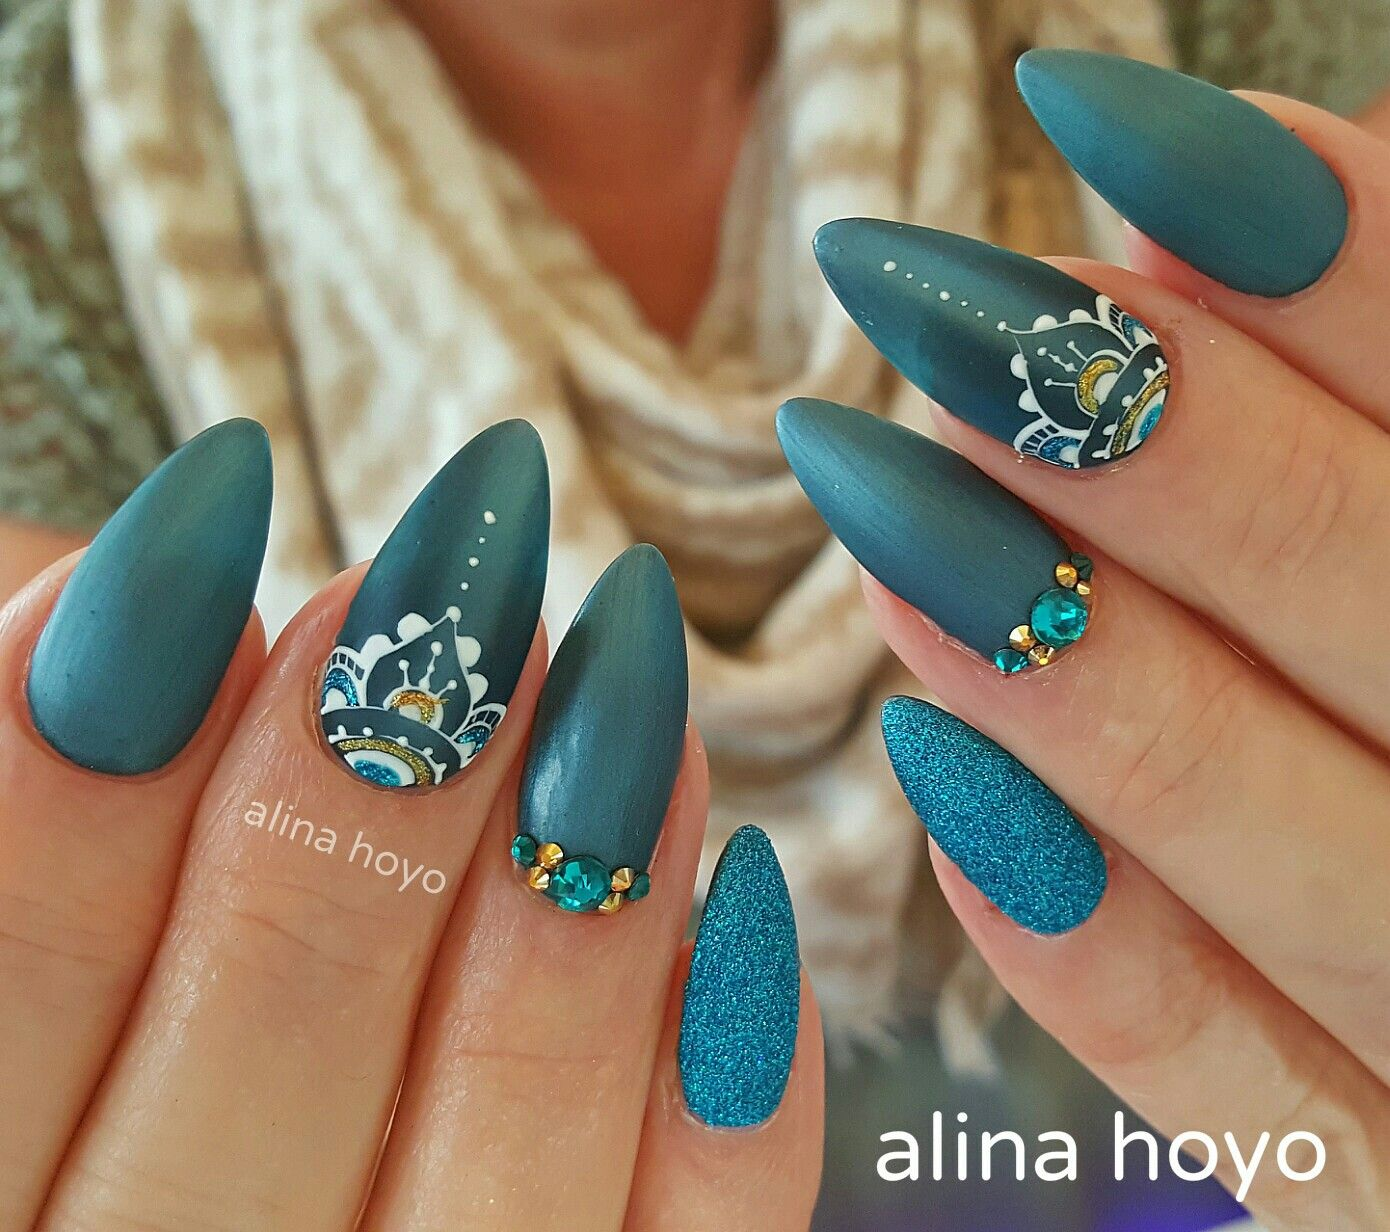 Blue glitter ombr 233 stiletto nails - Image Source Ugly Duckling Nails Inc